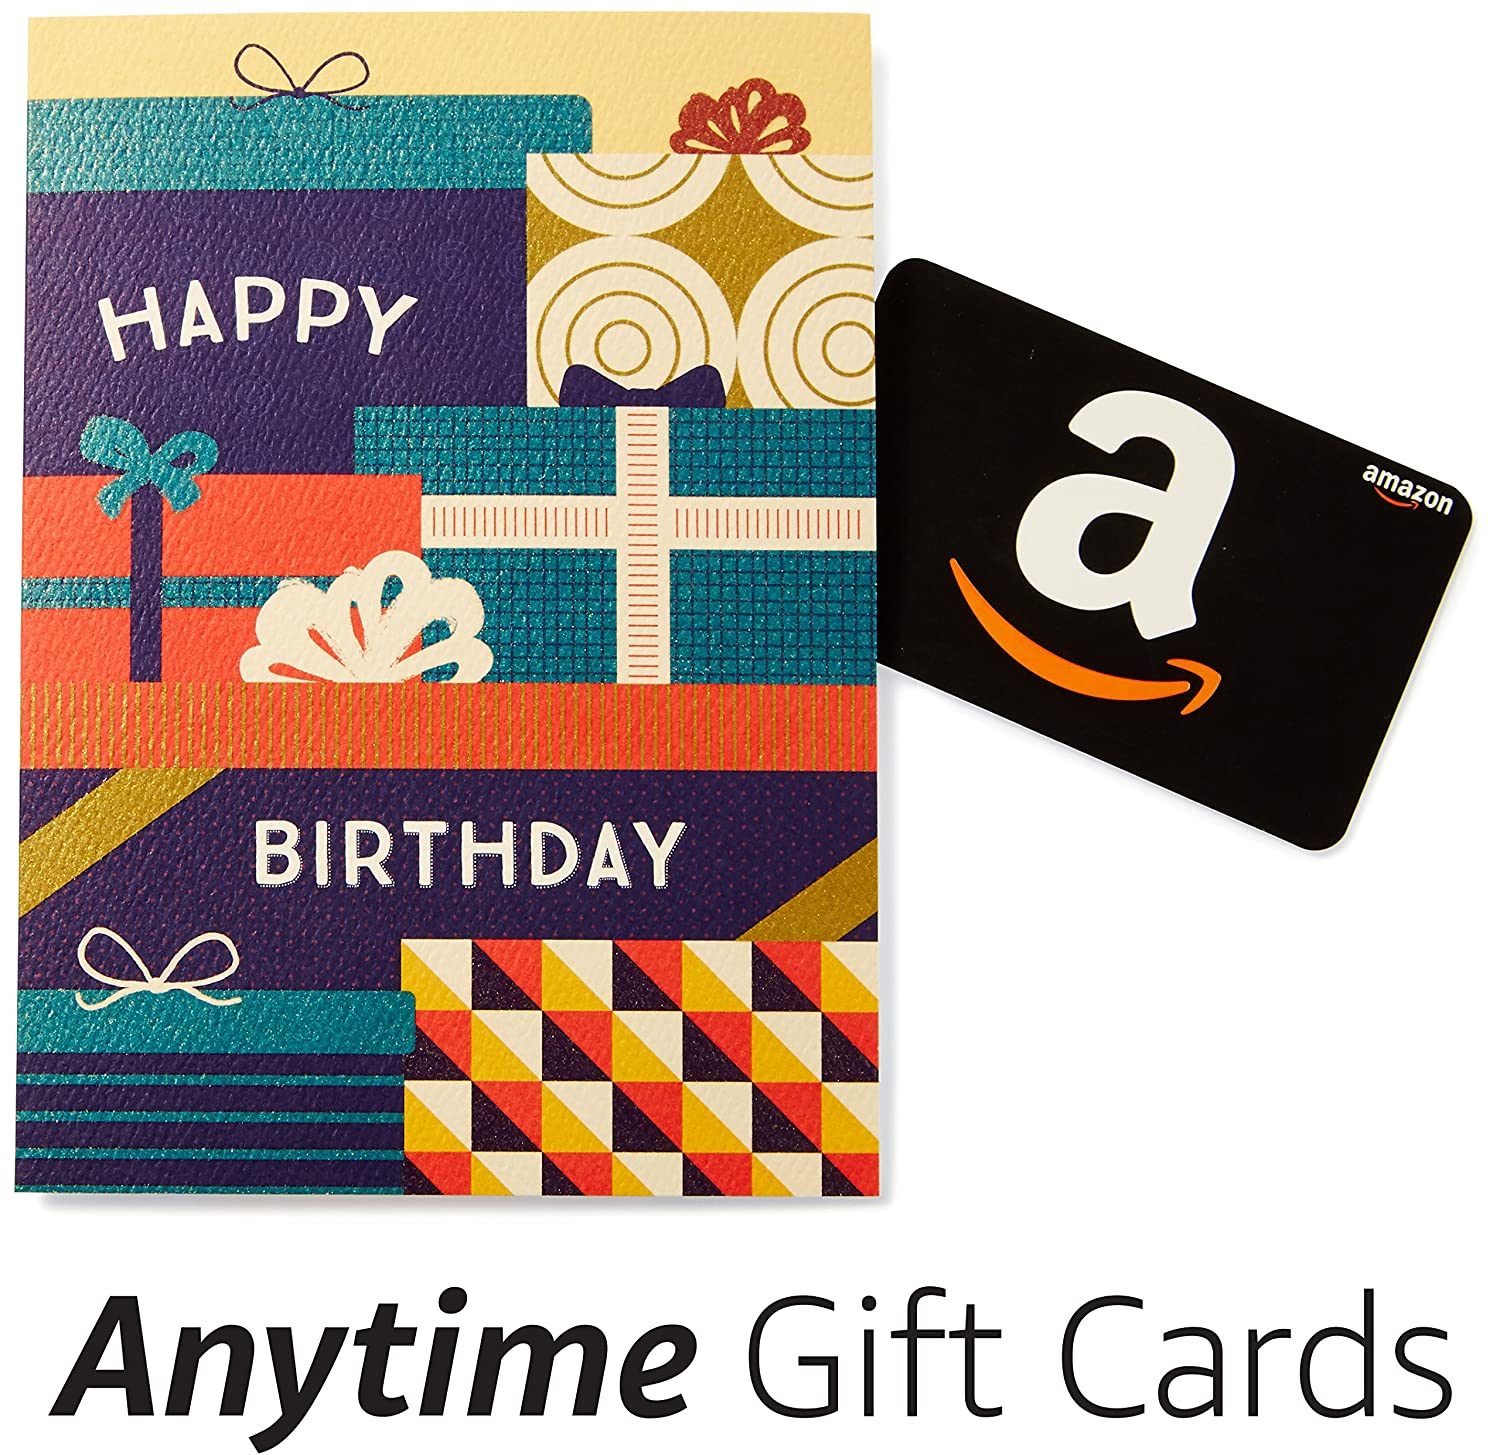 Amazon Amazon Happy Birthday Premium Greeting Card With Anytime